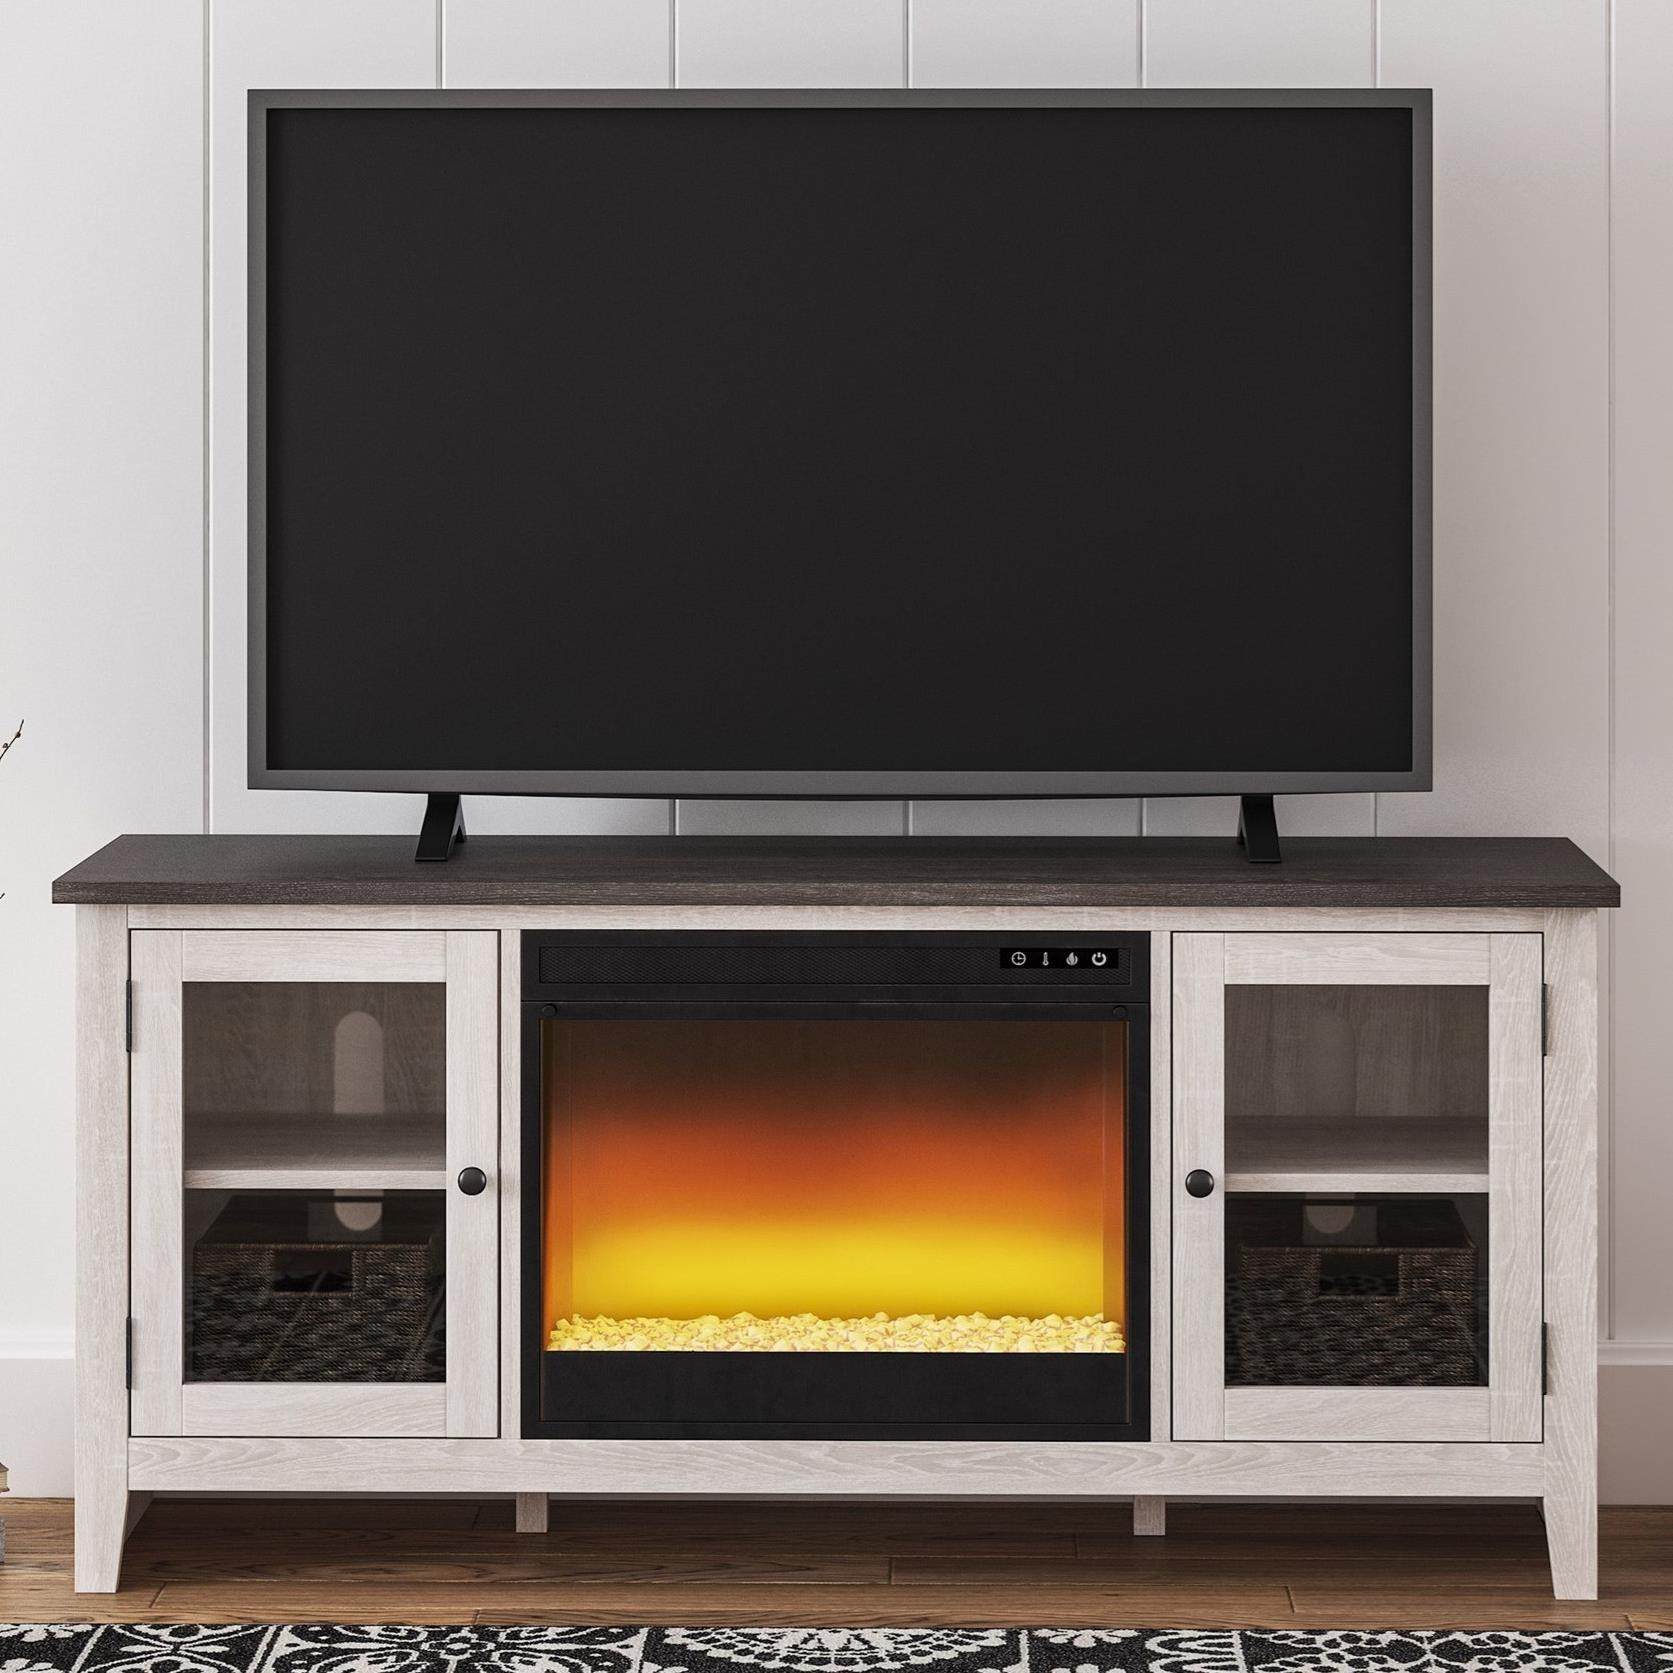 Two-Tone Large TV Stand w/ Fireplace Insert and Glass Doors